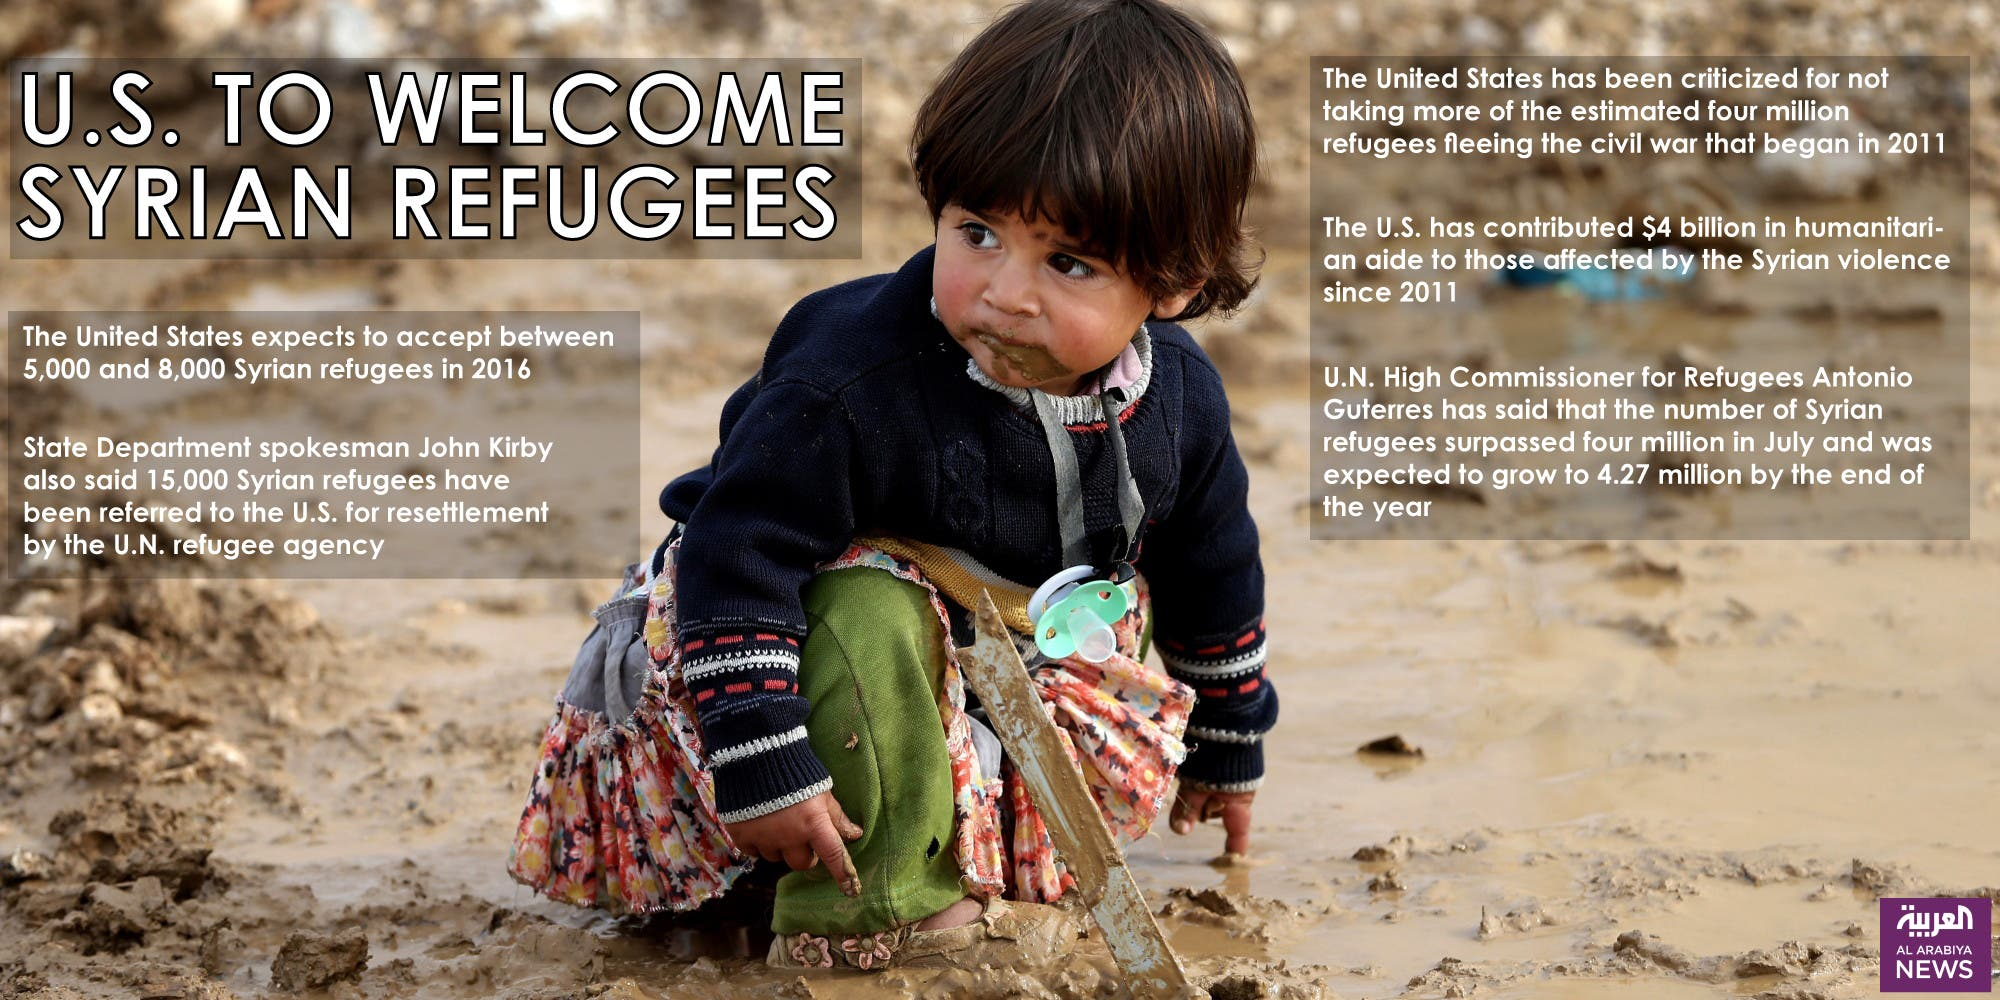 Infographic: U.S. to welcome Syrian refugees